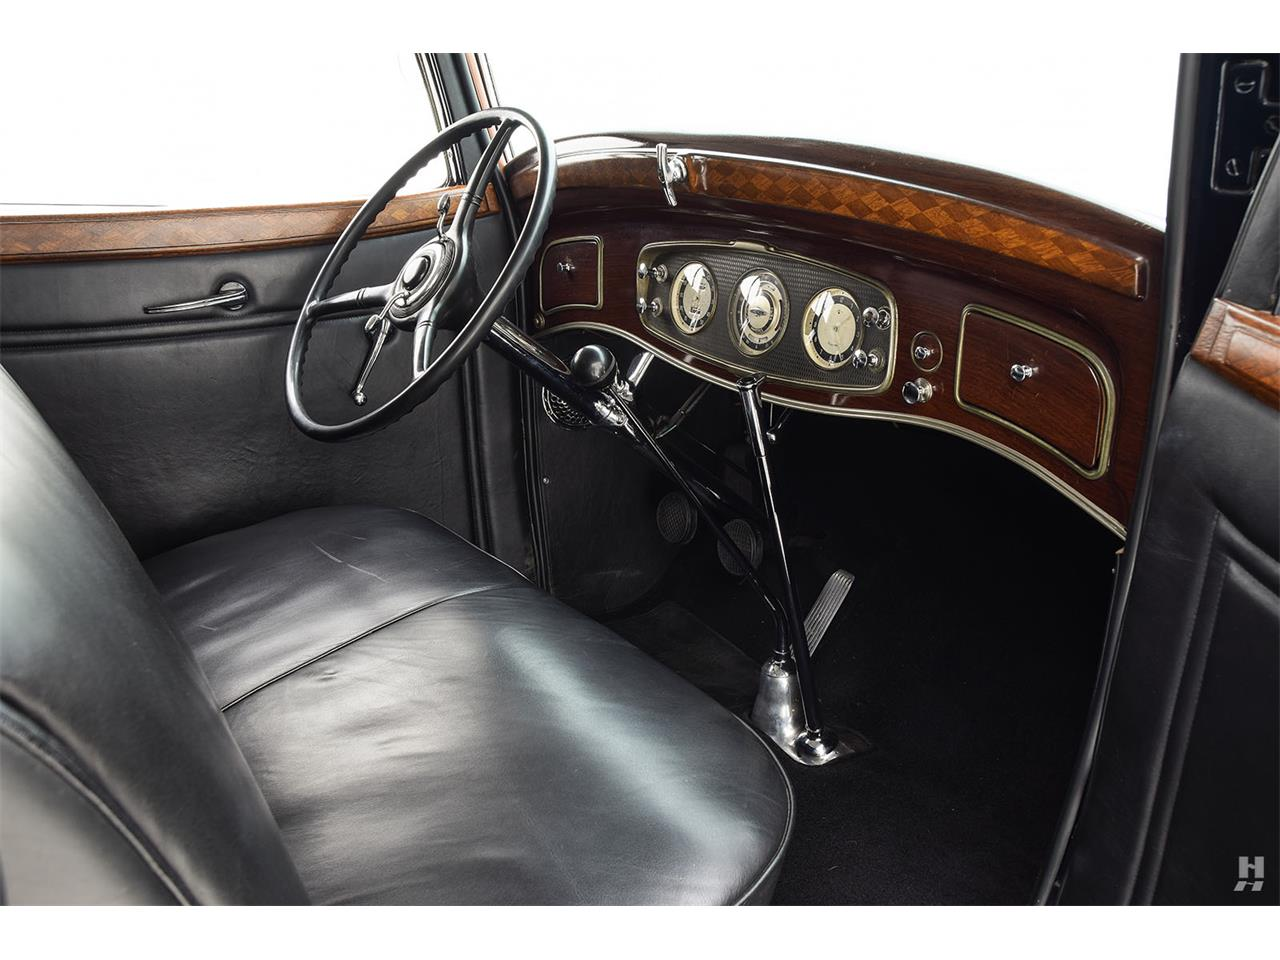 Large Picture of Classic 1934 Lincoln Antique located in Missouri - $129,500.00 Offered by Hyman Ltd. Classic Cars - LBT2